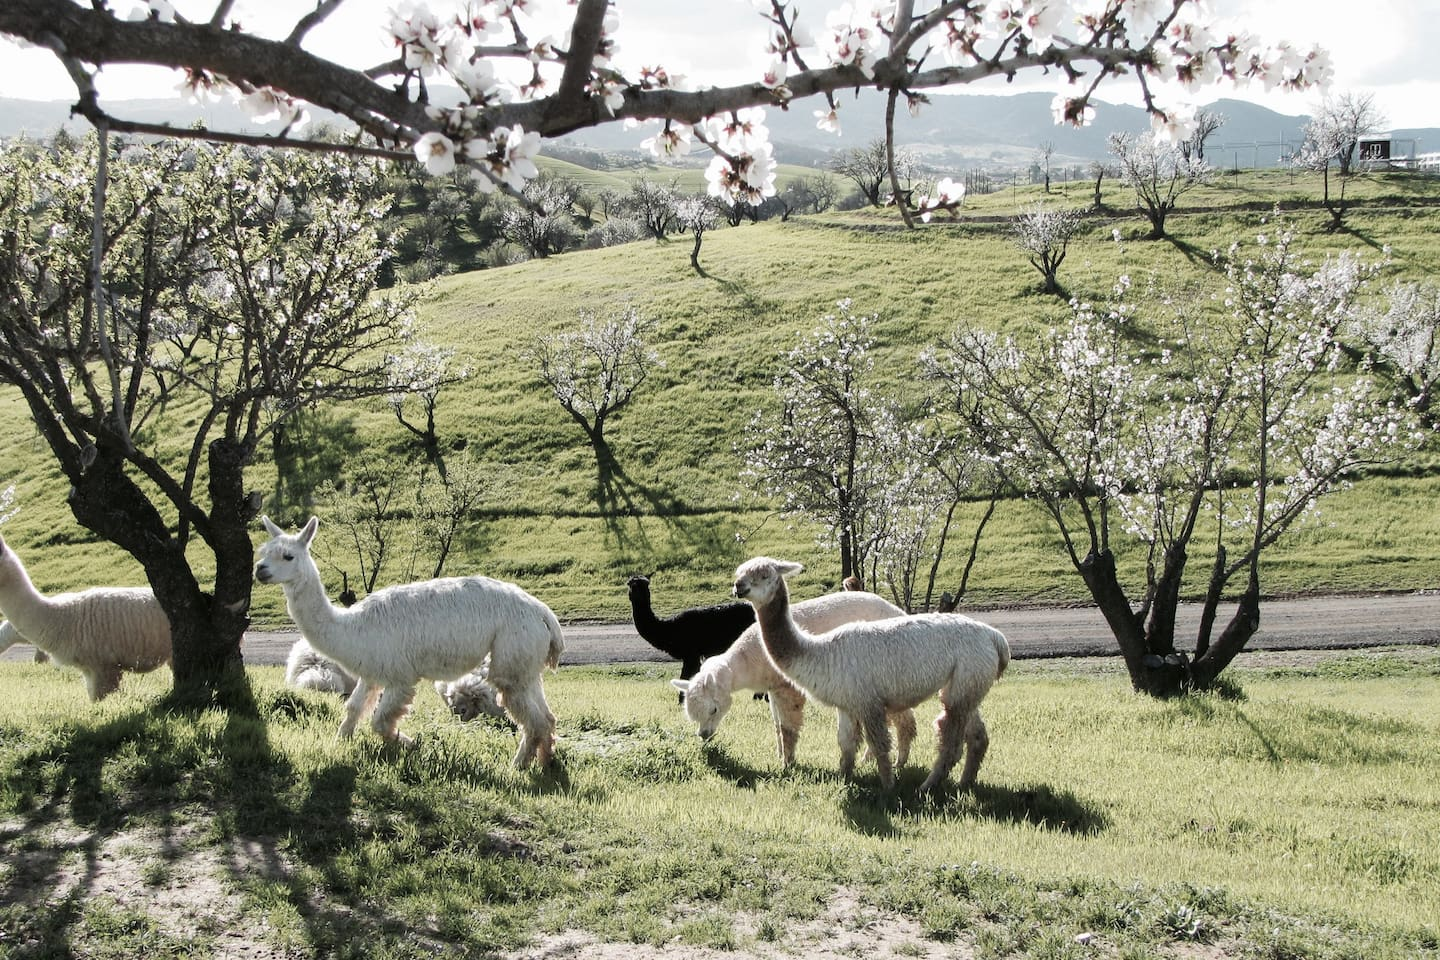 February-Almond trees in bloom with our alpacas grazing